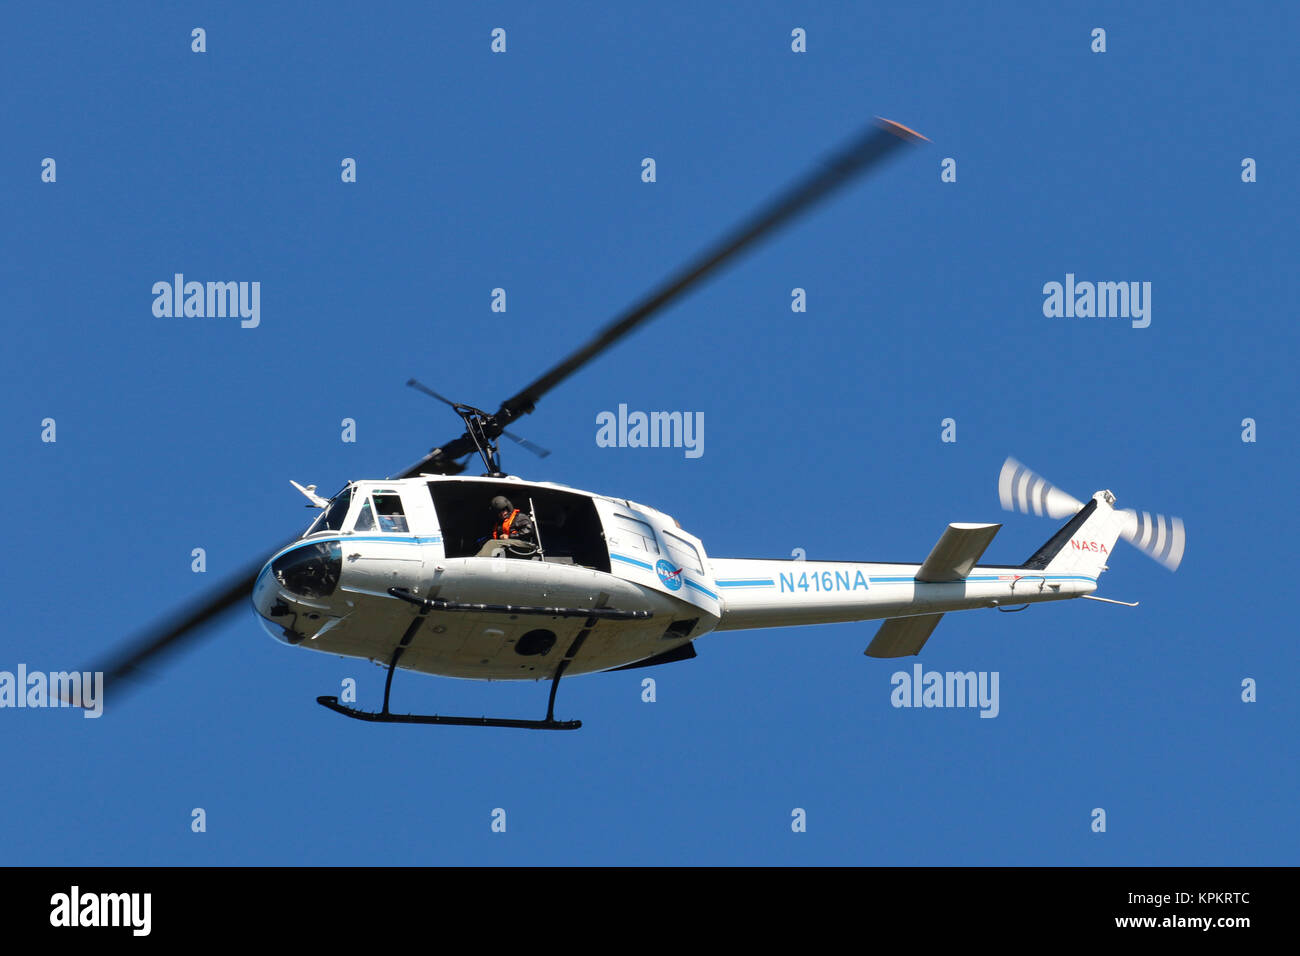 Being watched by the crew of NASA helicopter N416NA at Merritt Island Florida - Stock Image